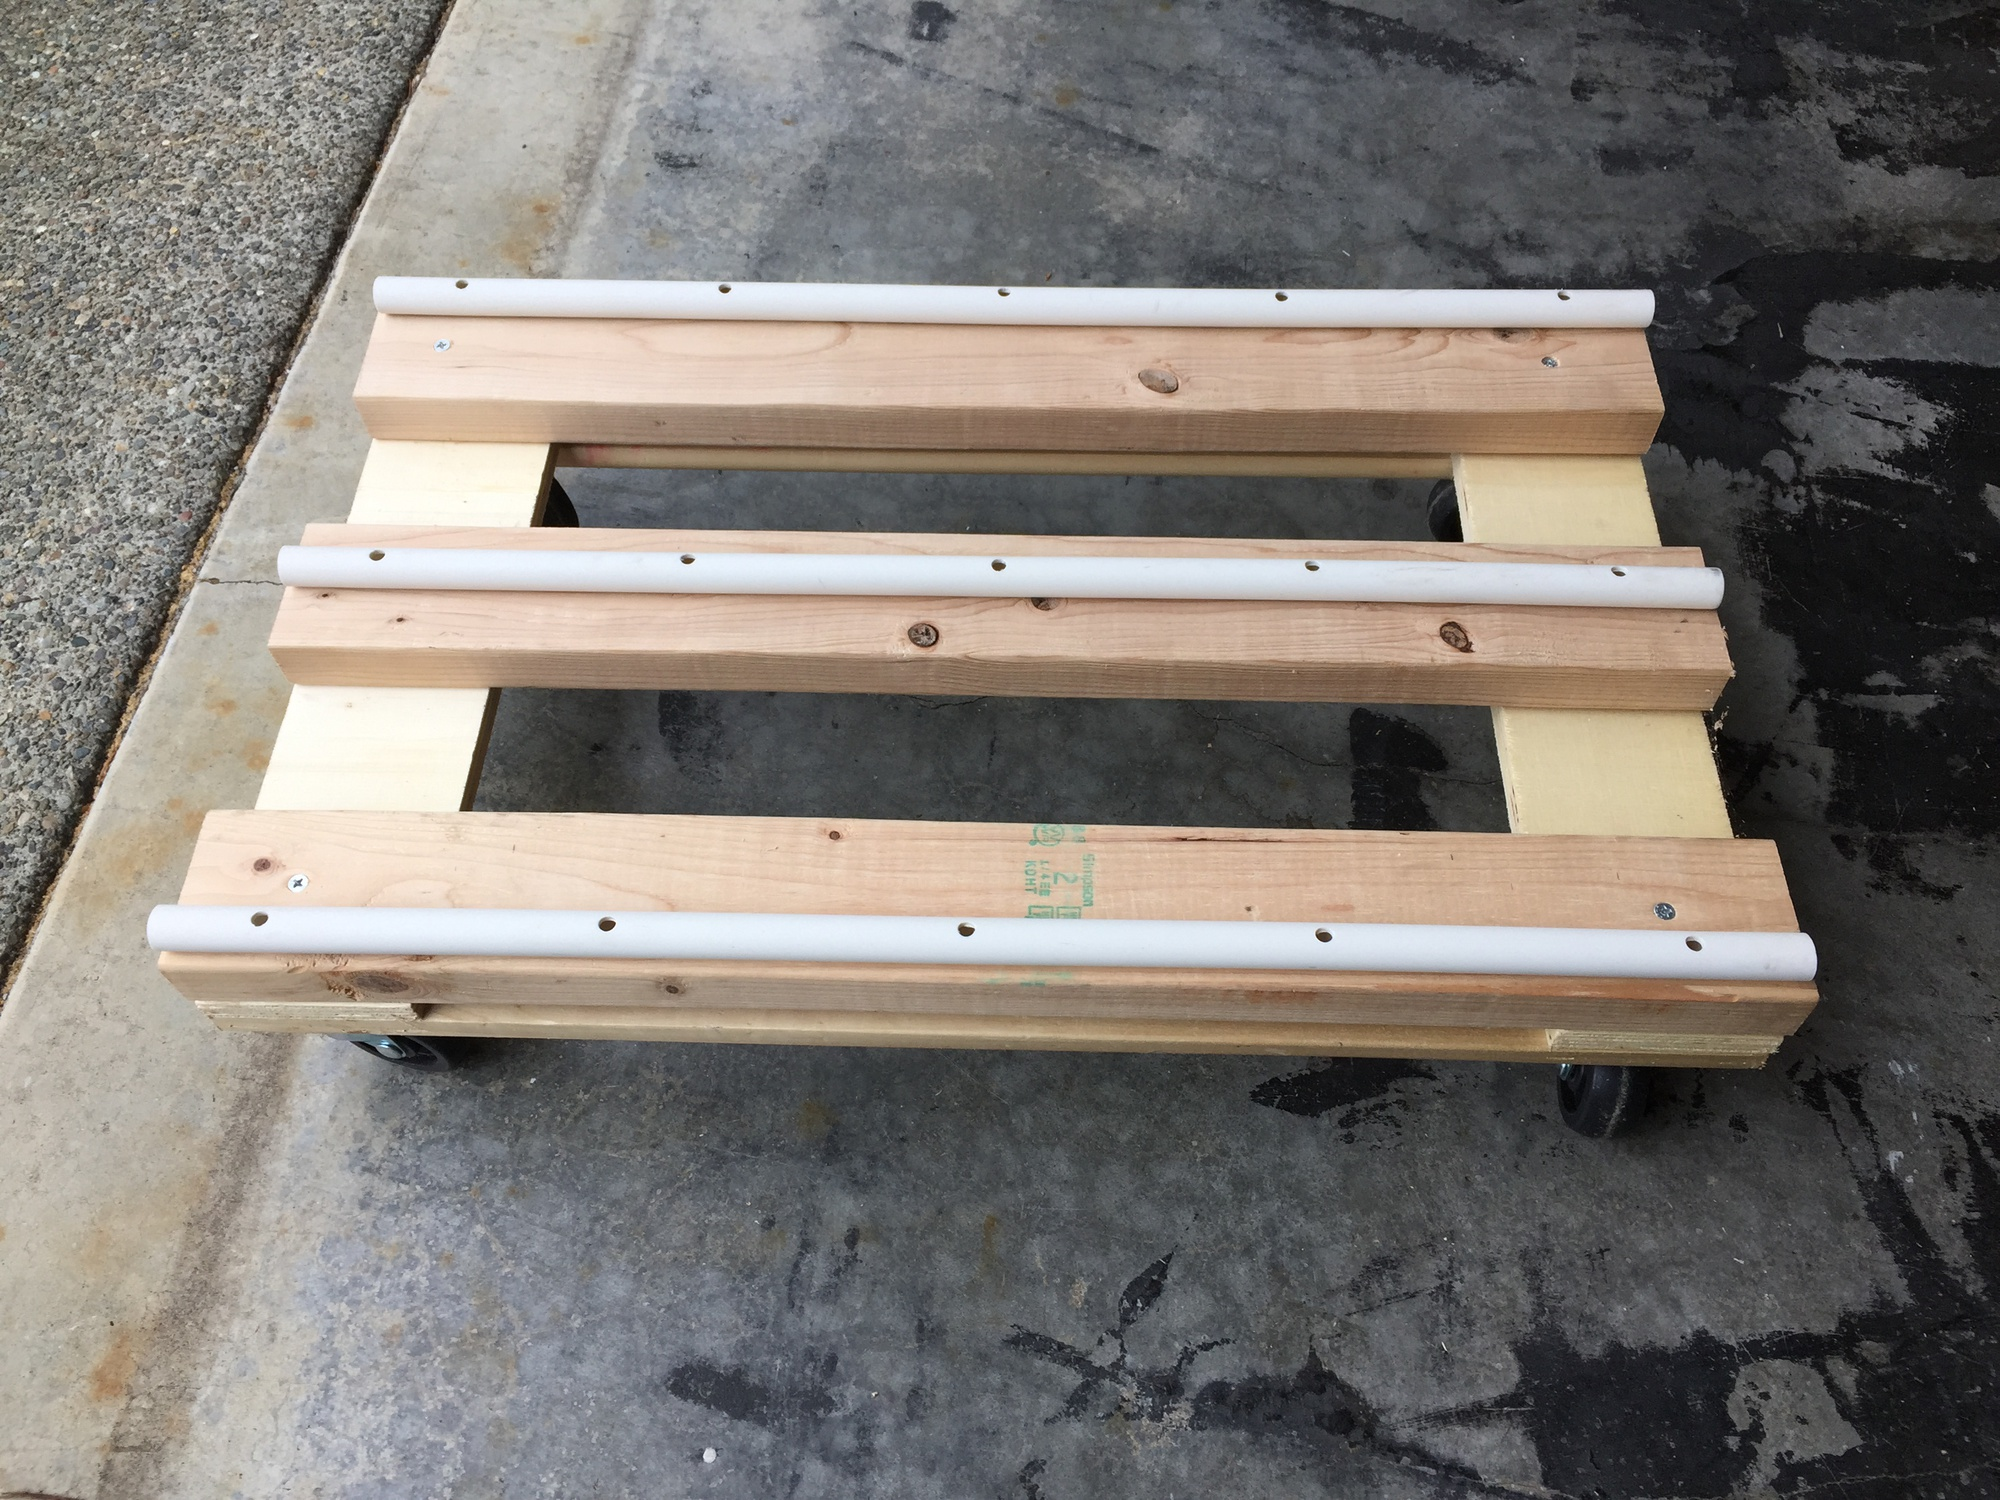 Tool Mover Router Forums - Picnic table mover